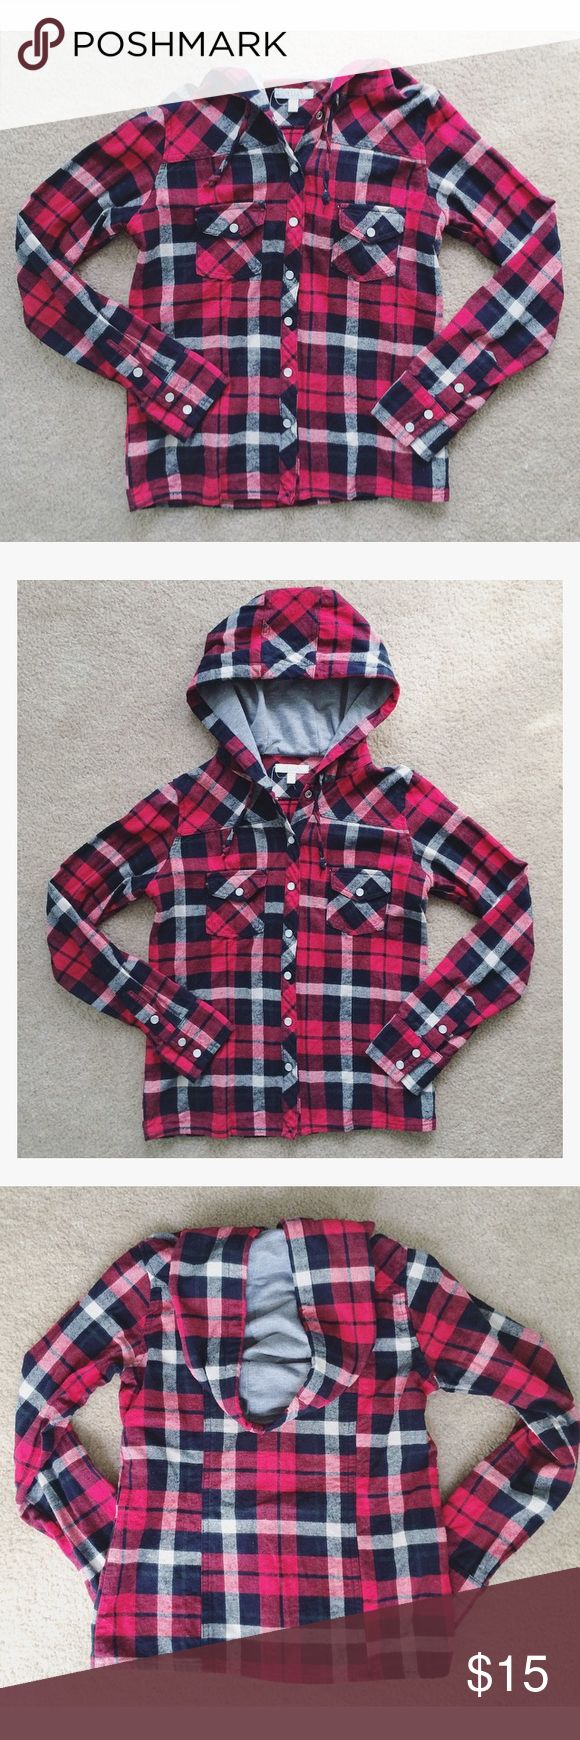 Hooded Plaid Button-down Top Red, white, and black plaid button-down flannel top, with a gray jersey lined hood. Faux-pearl snap buttons on front placket, cuffs, and pockets. Stock photo from Delia's.   Tag says size M but fits like a S or XS Barely worn, excellent used condition. No modeling (it doesn't fit me) • No trades • Make all offers using the offer button! Delia's Tops Button Down Shirts